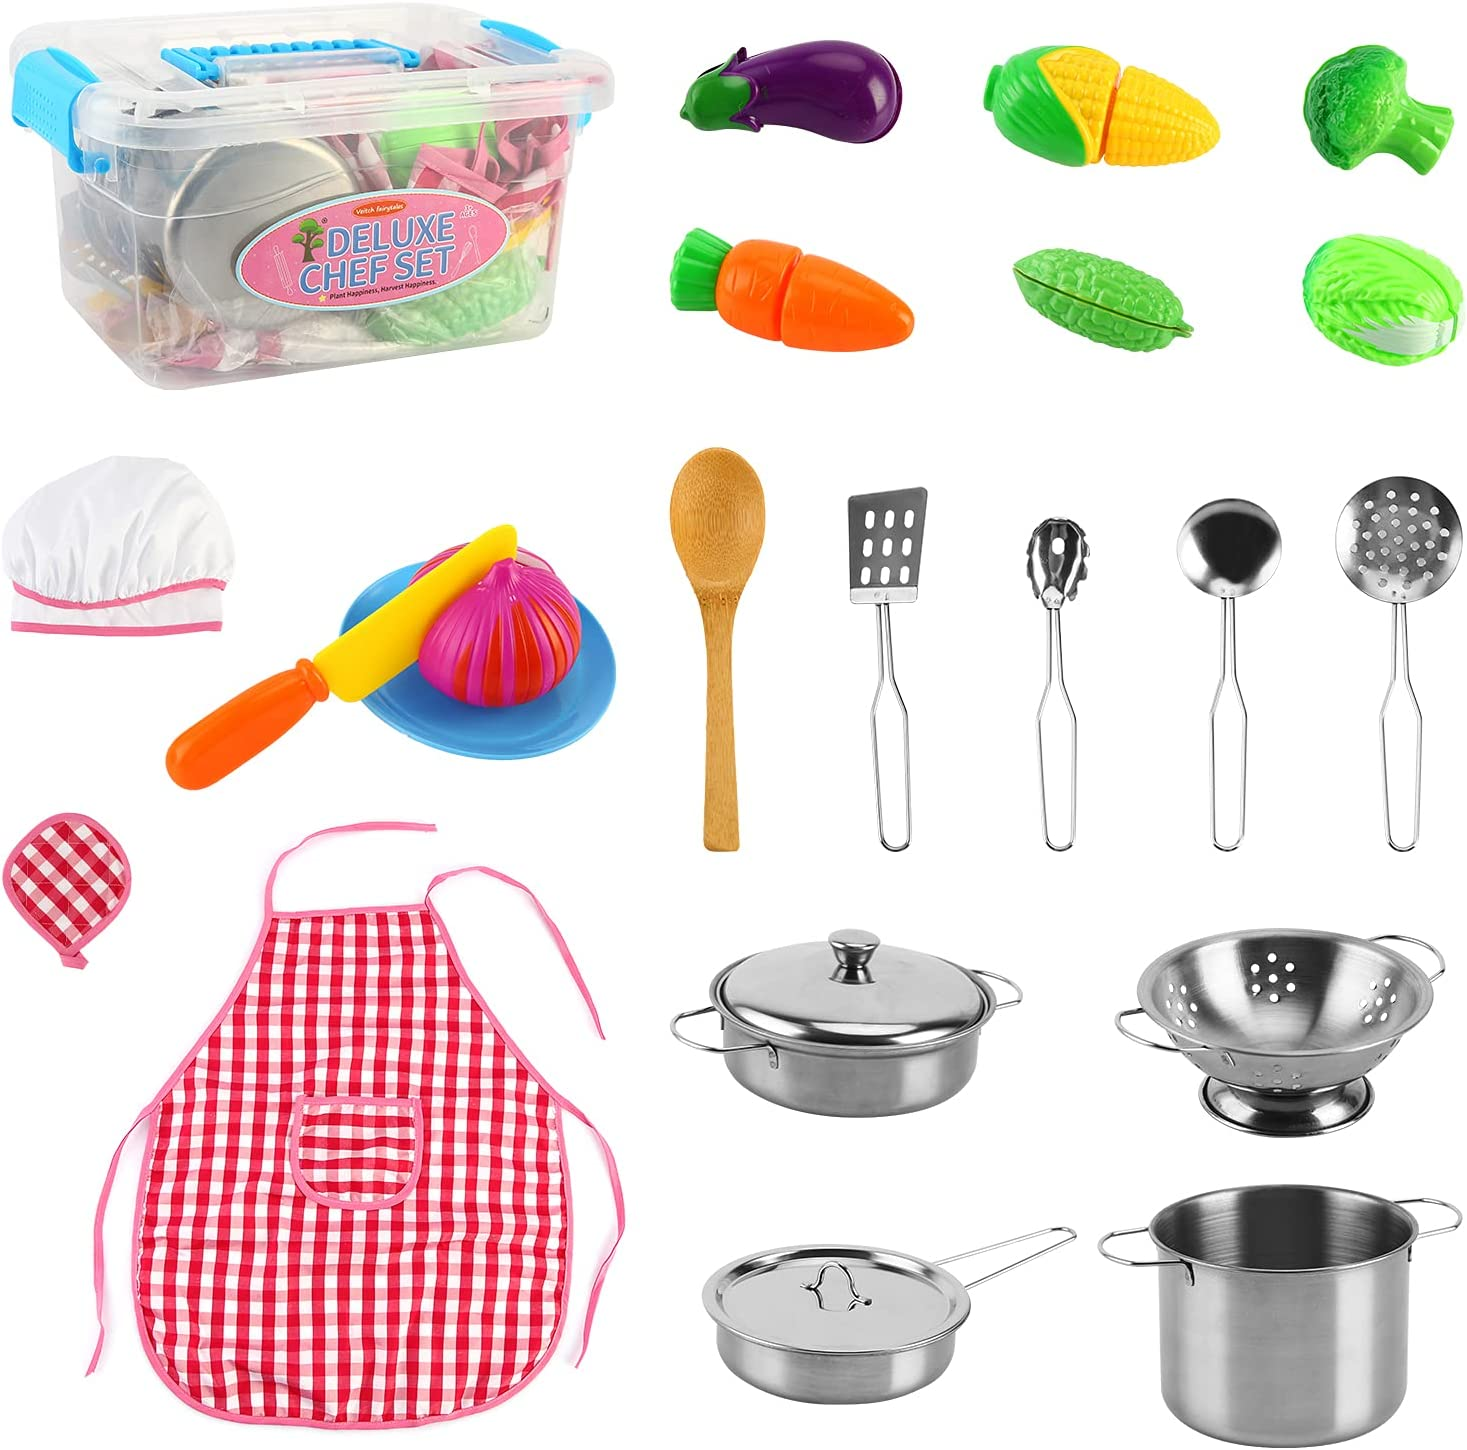 AMAMIA Kitchen Pretend Super special price Play Trust Toys Cooking with 23Pcs Kids